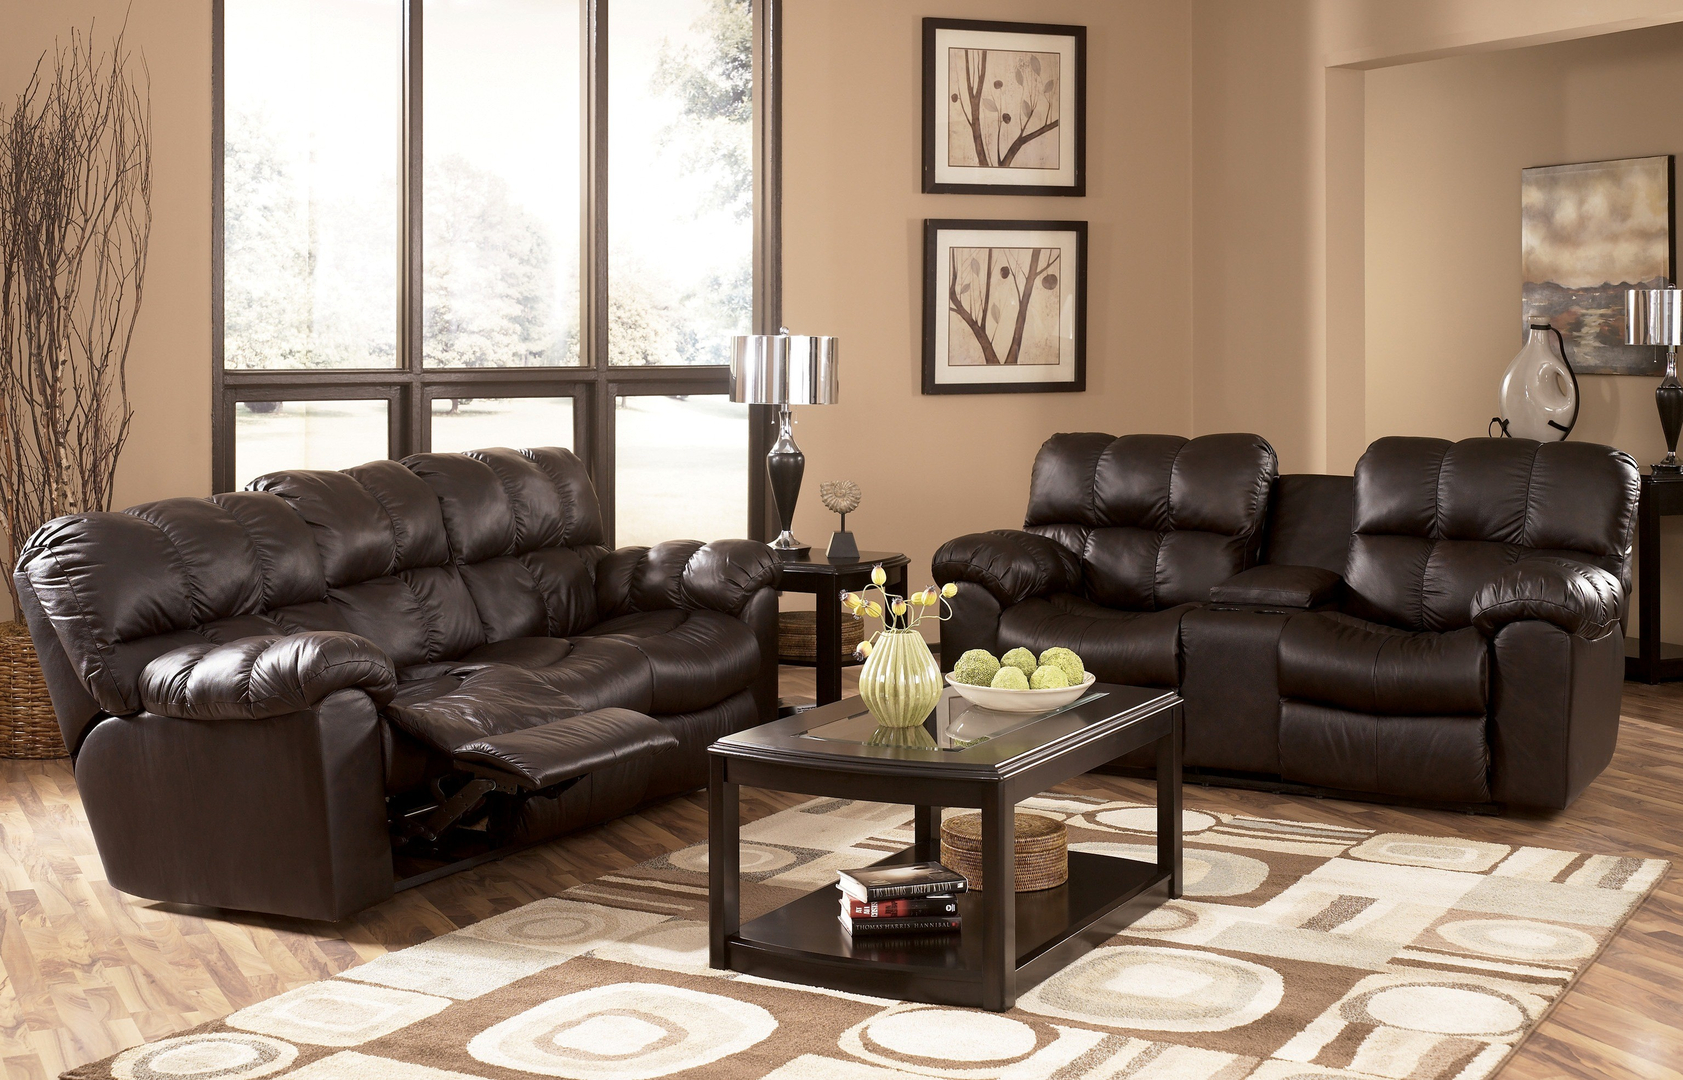 Used Living Room Furniture Lowest Price On New And Used Furniture Since 1972 Shop Jk Furniture